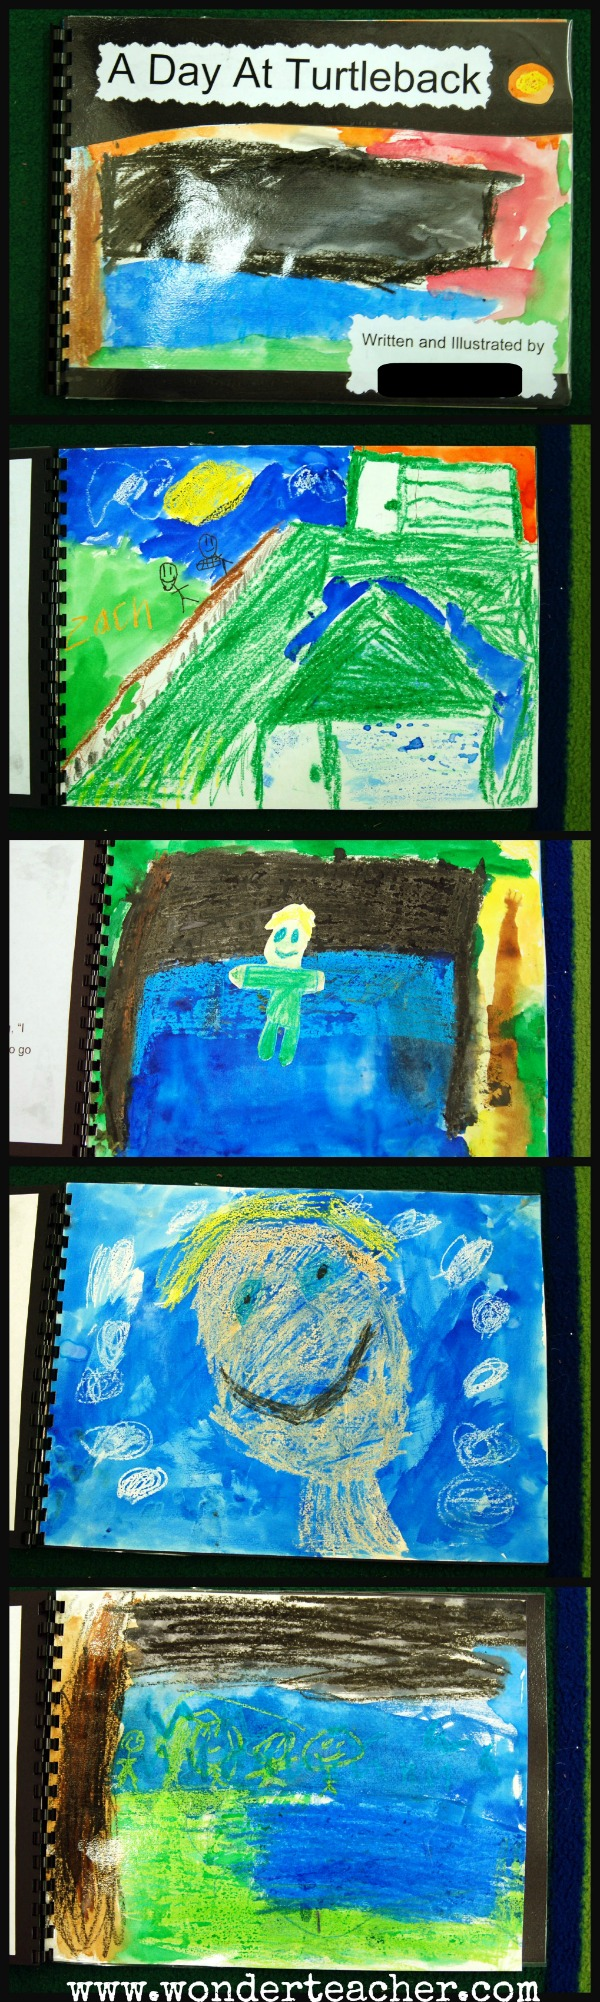 Writing and Art Integration- Turtleback Creek Story